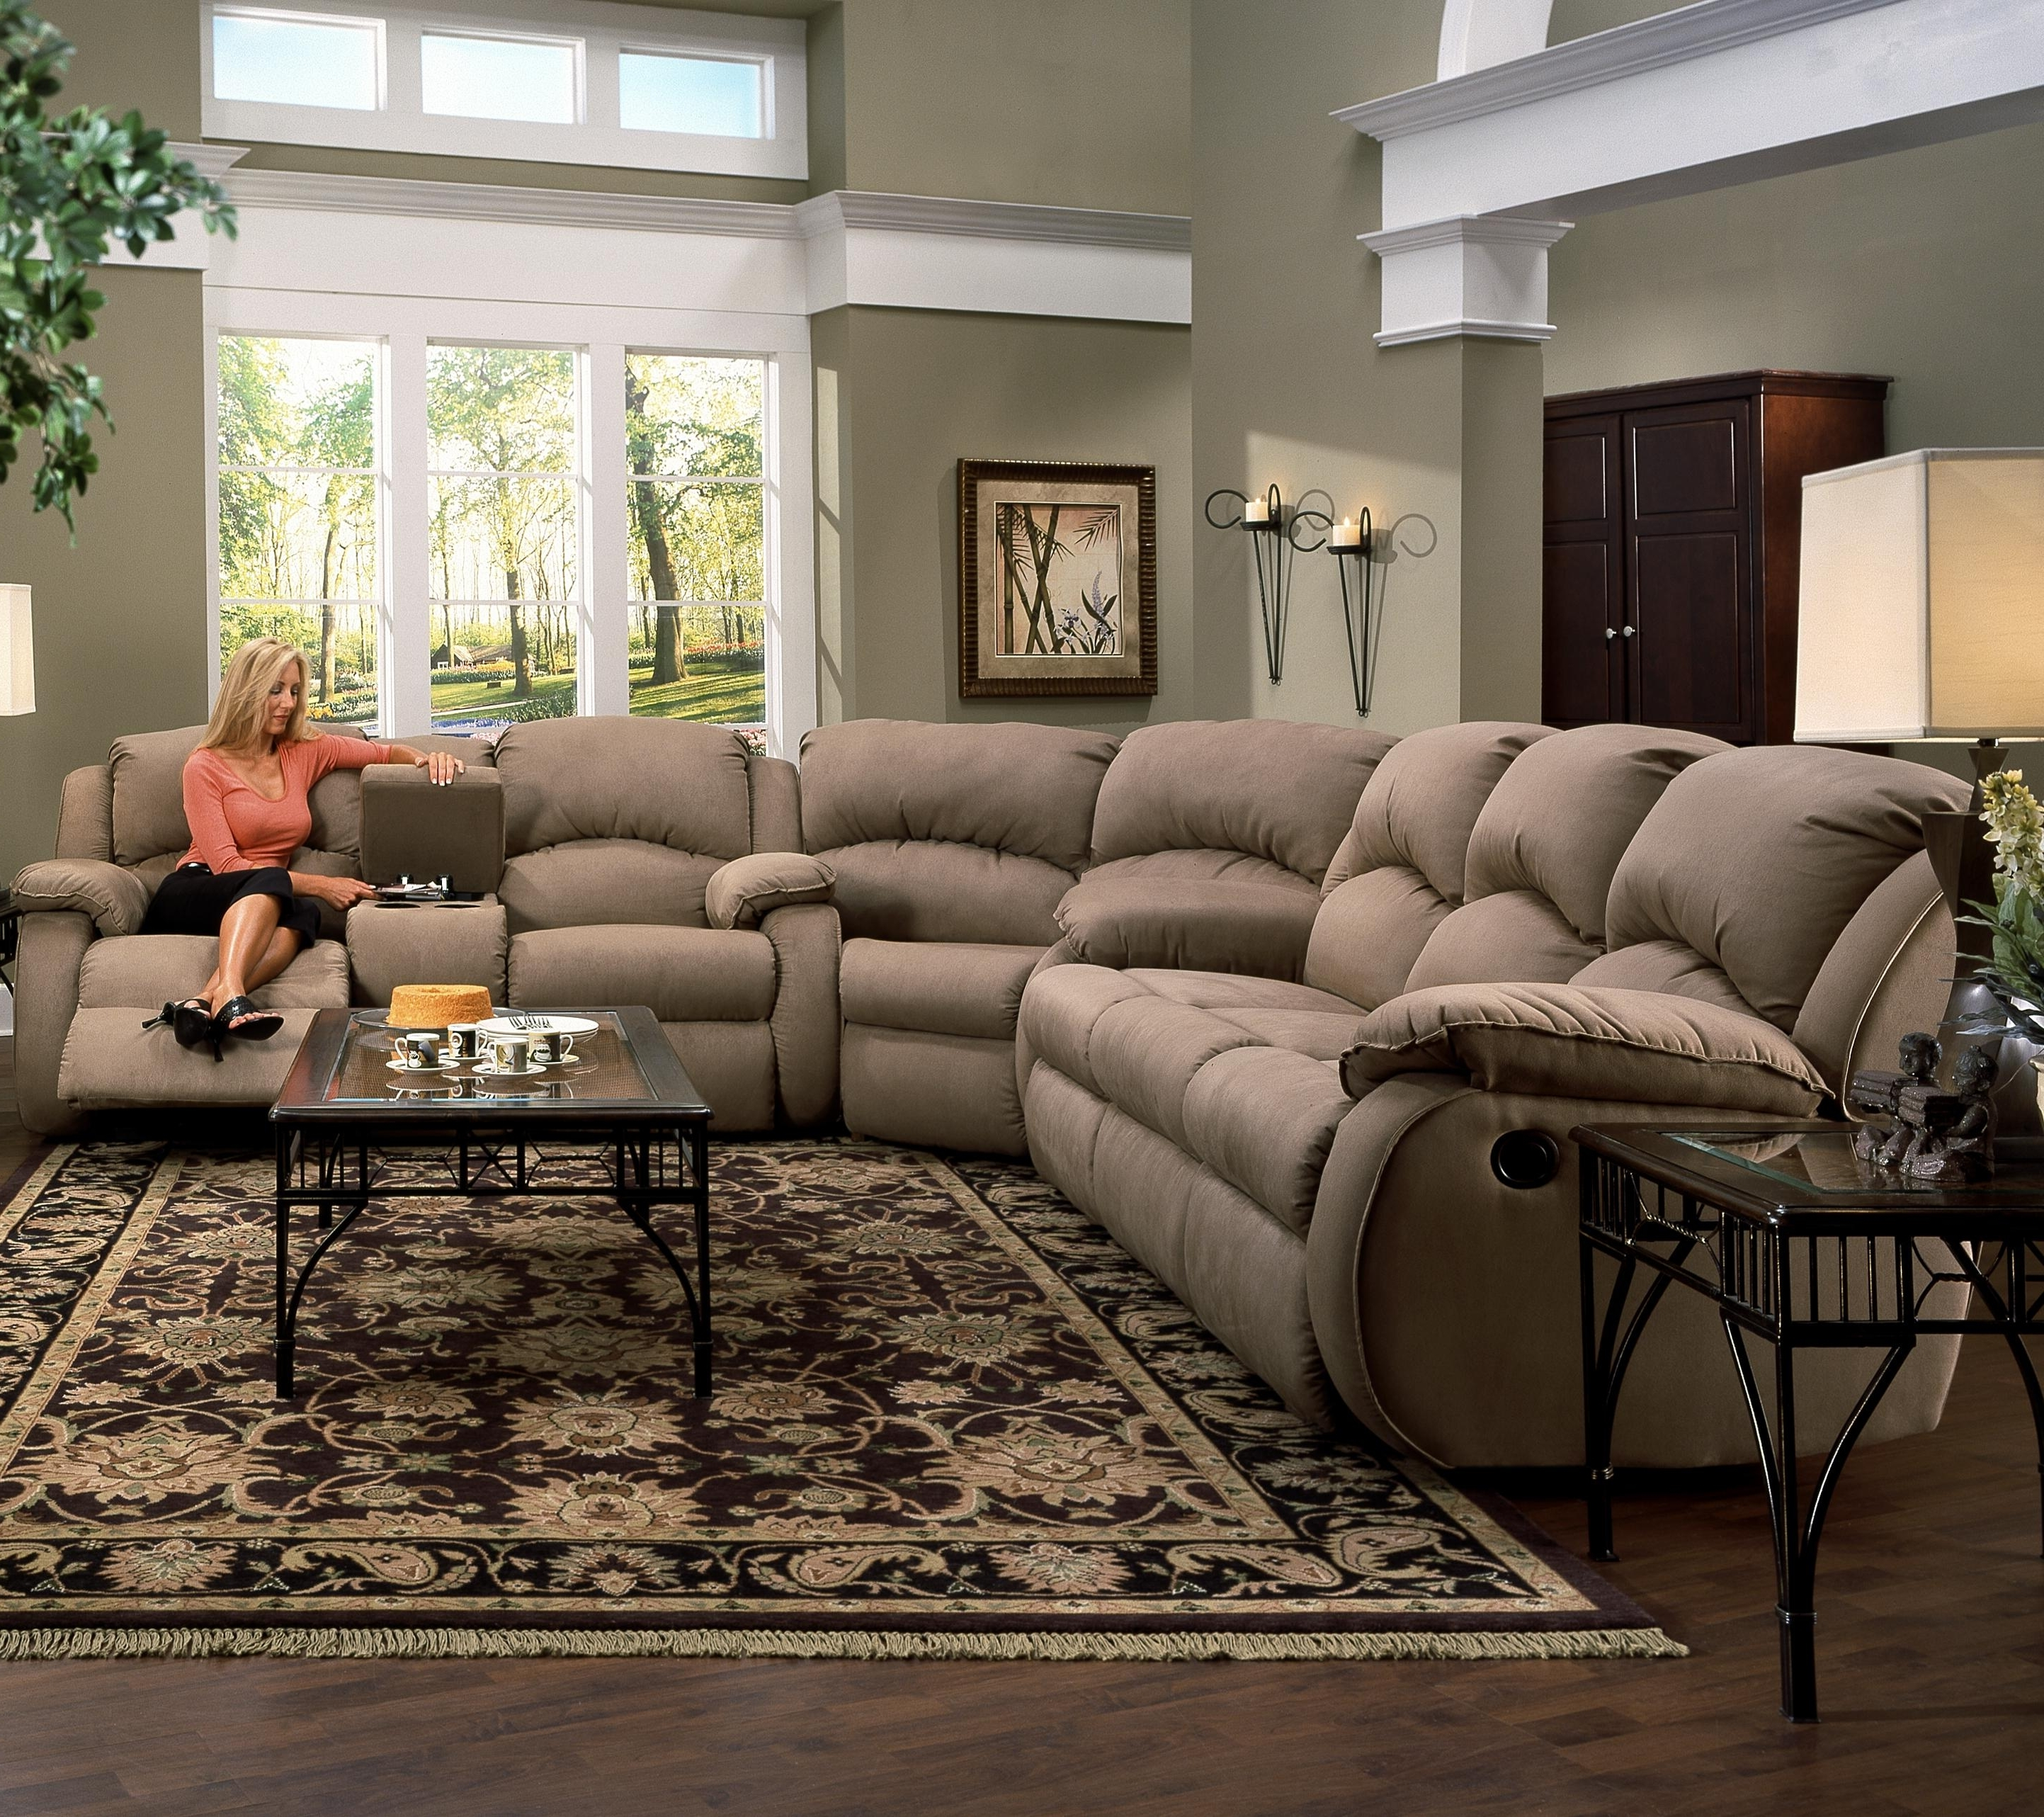 Aifaresidency Intended For Widely Used Sectional Sofas With Recliners (View 11 of 15)